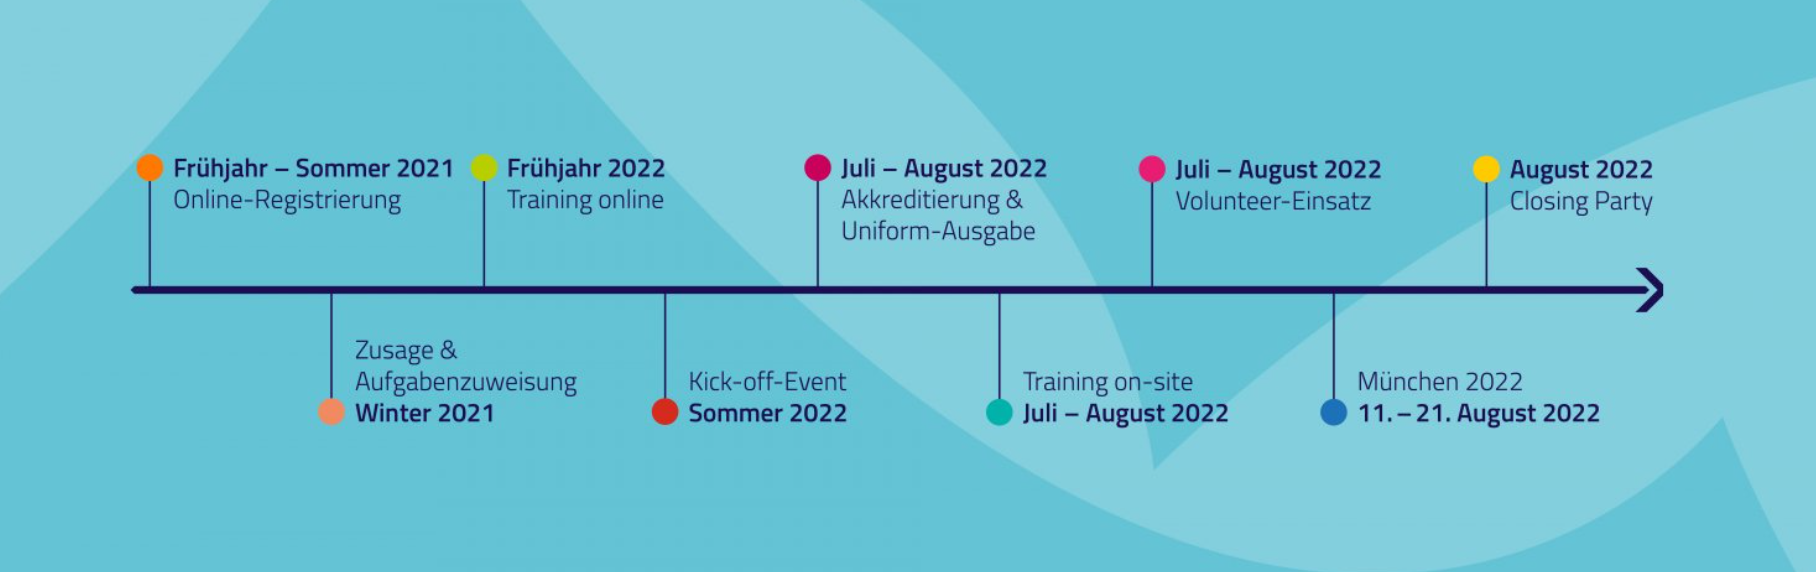 The timeline for volunteer application and operation at the European Championships 2022 in Munich ©European Championships 2022